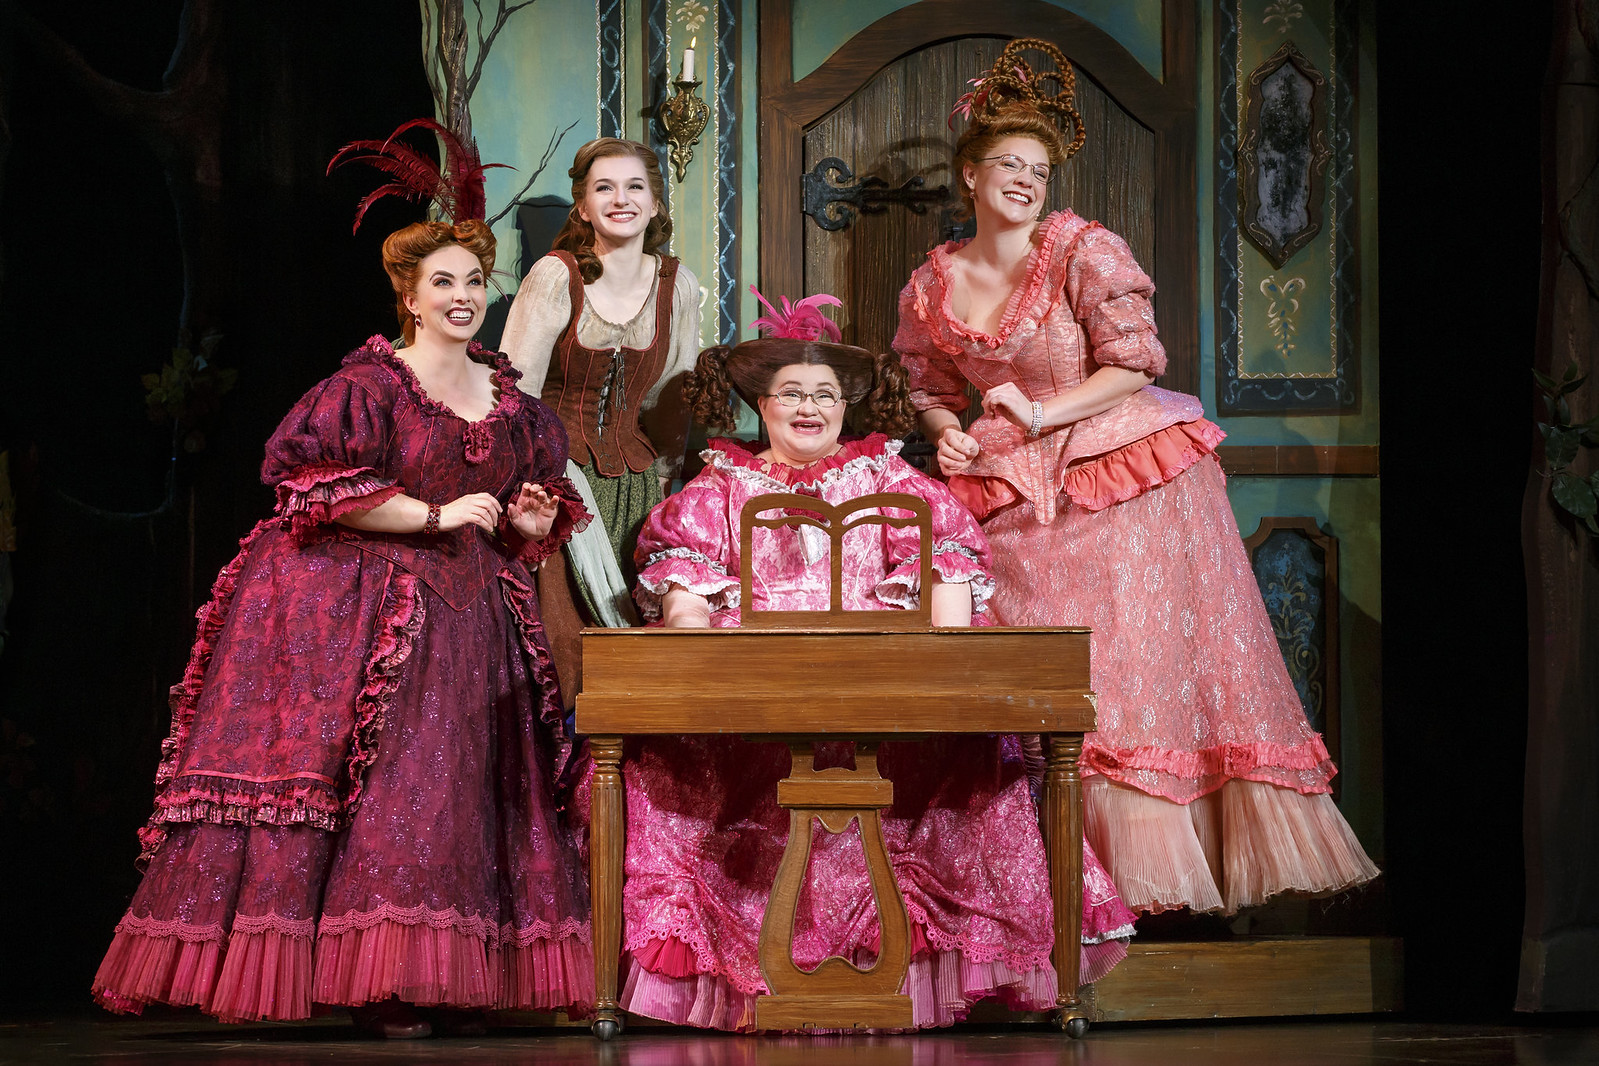 Sarah Smith, Tatyana Lubov, Joanna Johnson, and Nicole Zelka in Rodgers + Hammerstein's Cinderella. Photo: © Carol Rosegg // Broadway In Detroit: Rodgers + Hammerstein's Cinderella At The Fisher Theatre | via Wading in Big Shoes